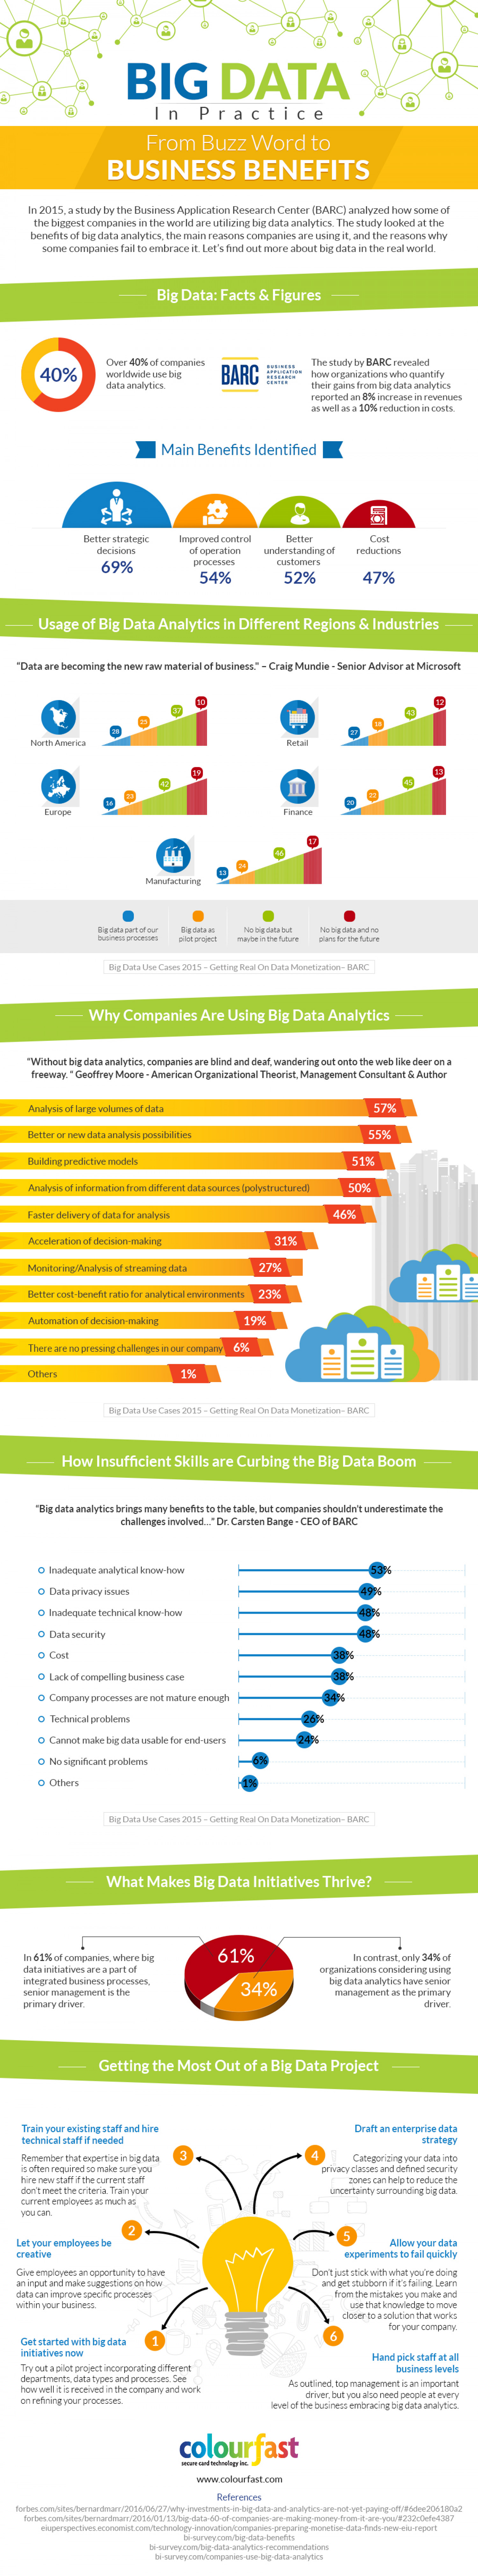 Big Data In Practice: From Buzz Word To Business Benefits